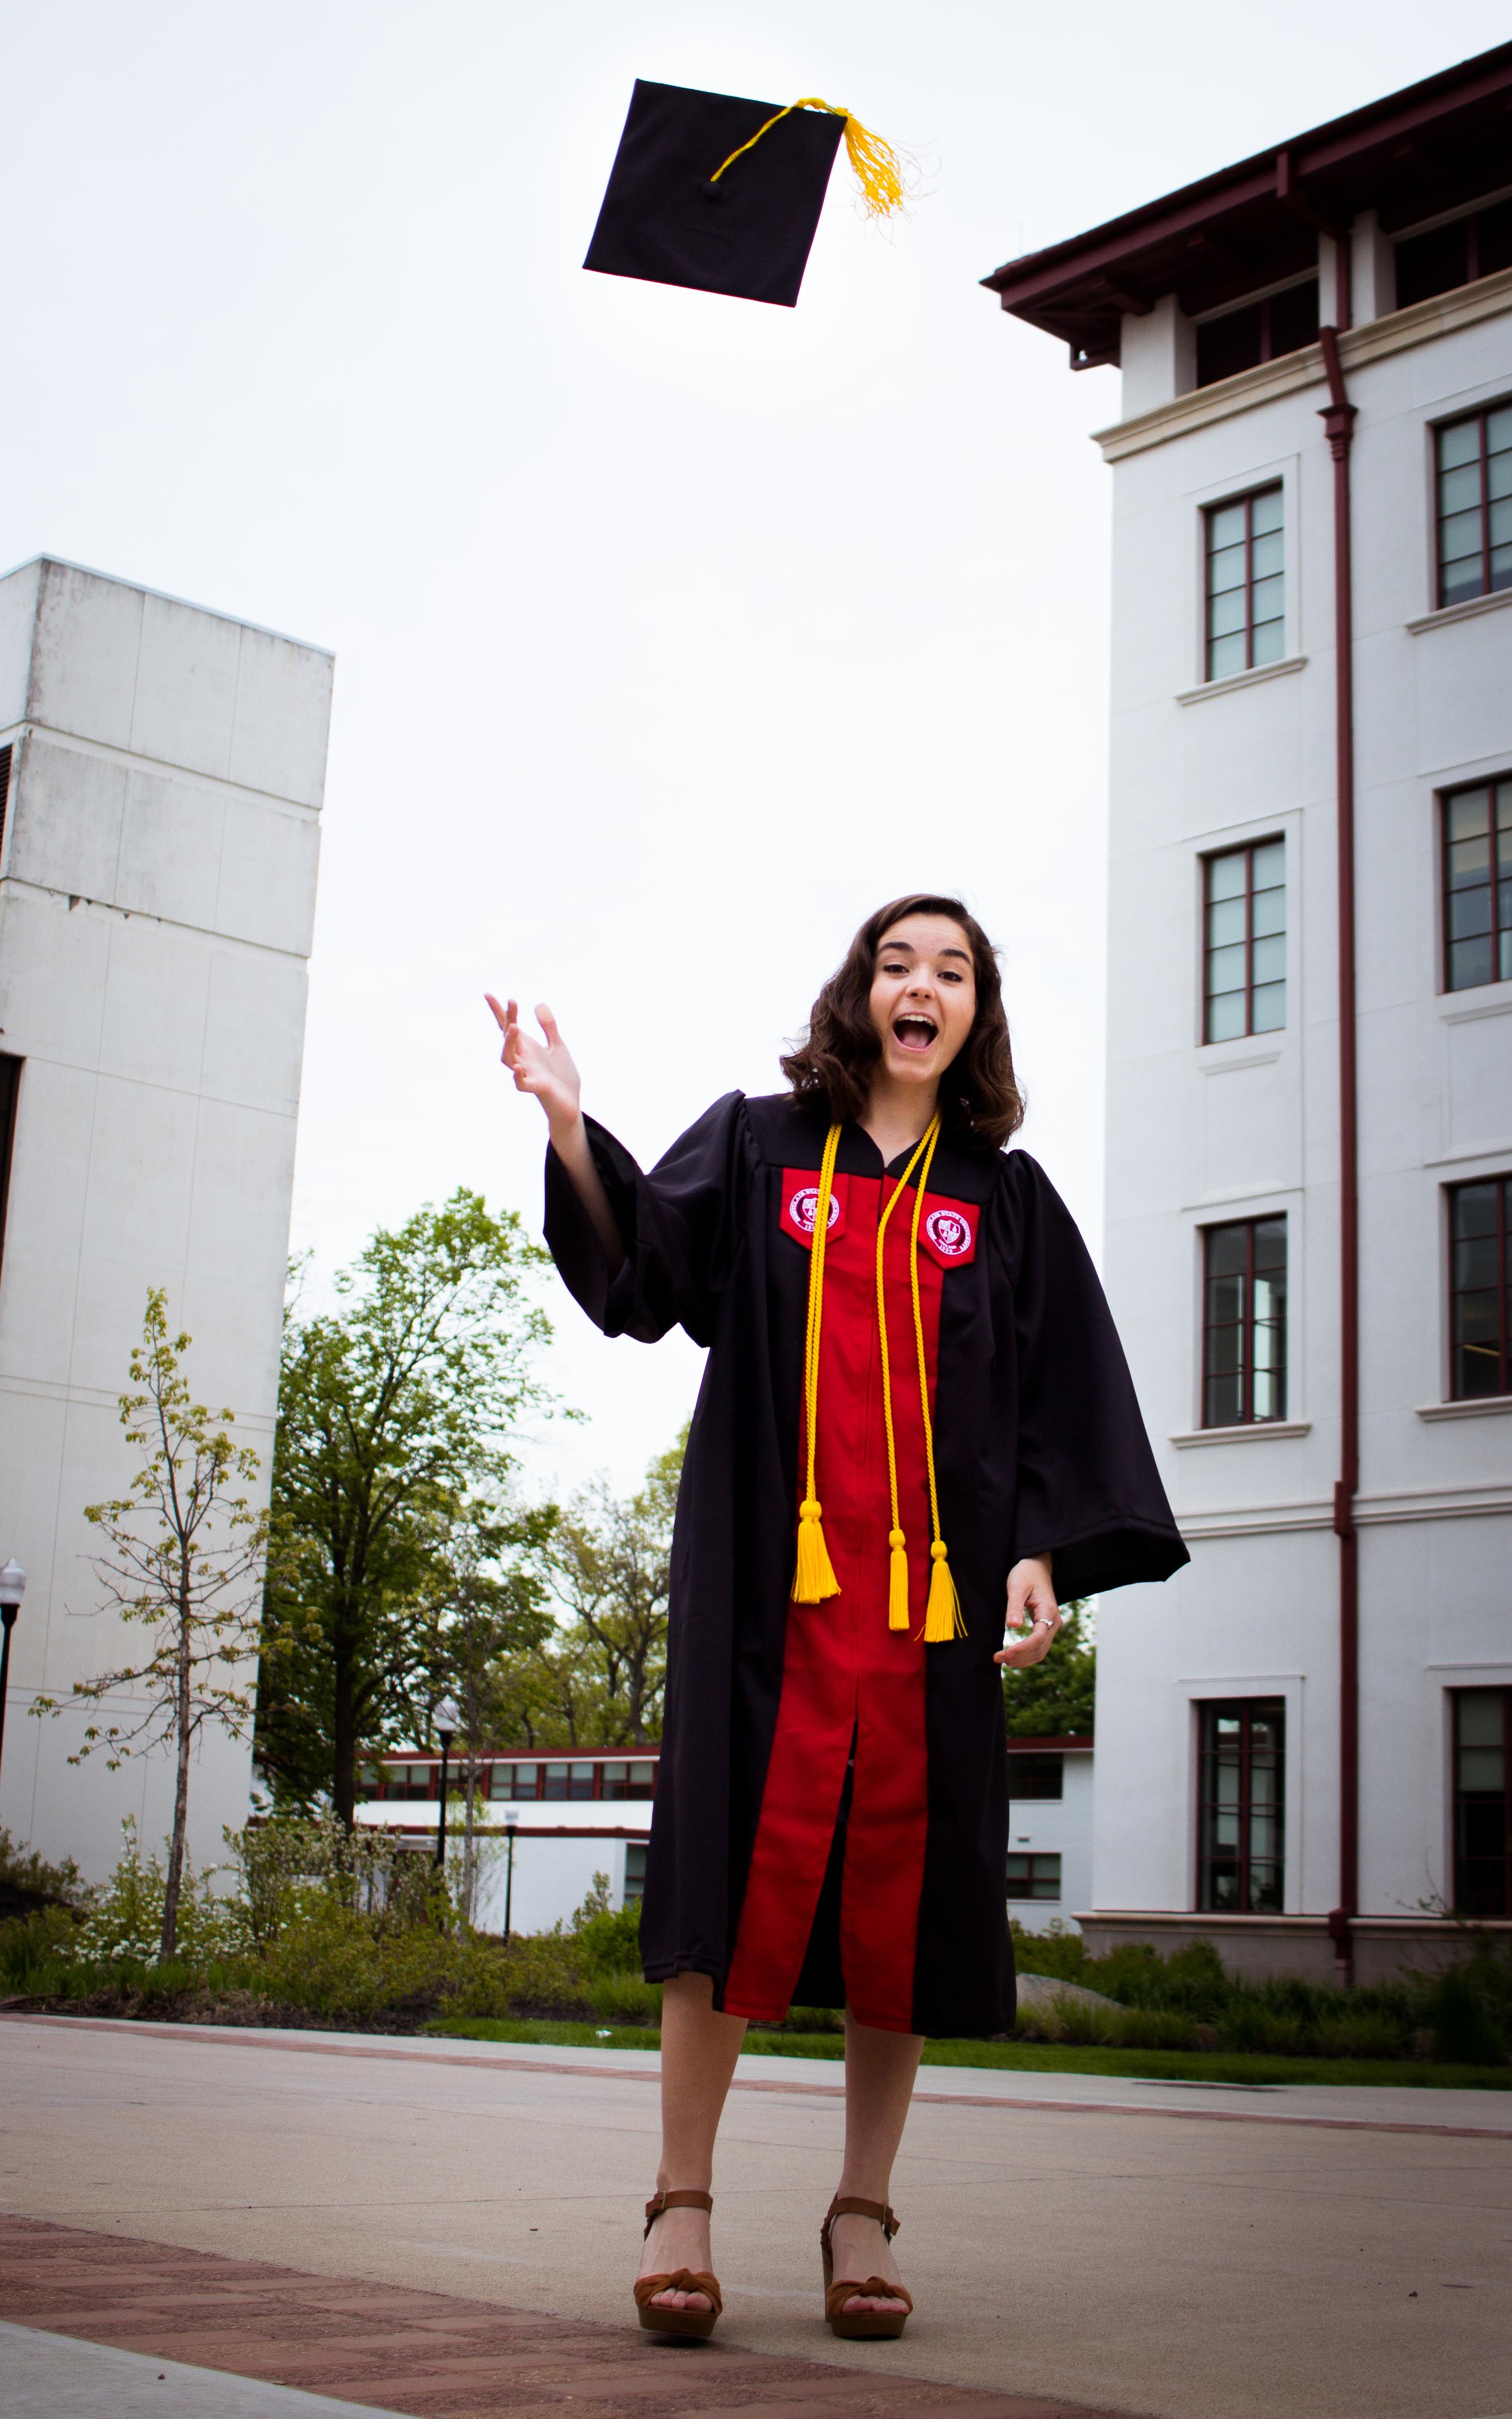 Grad Photos by James Barker